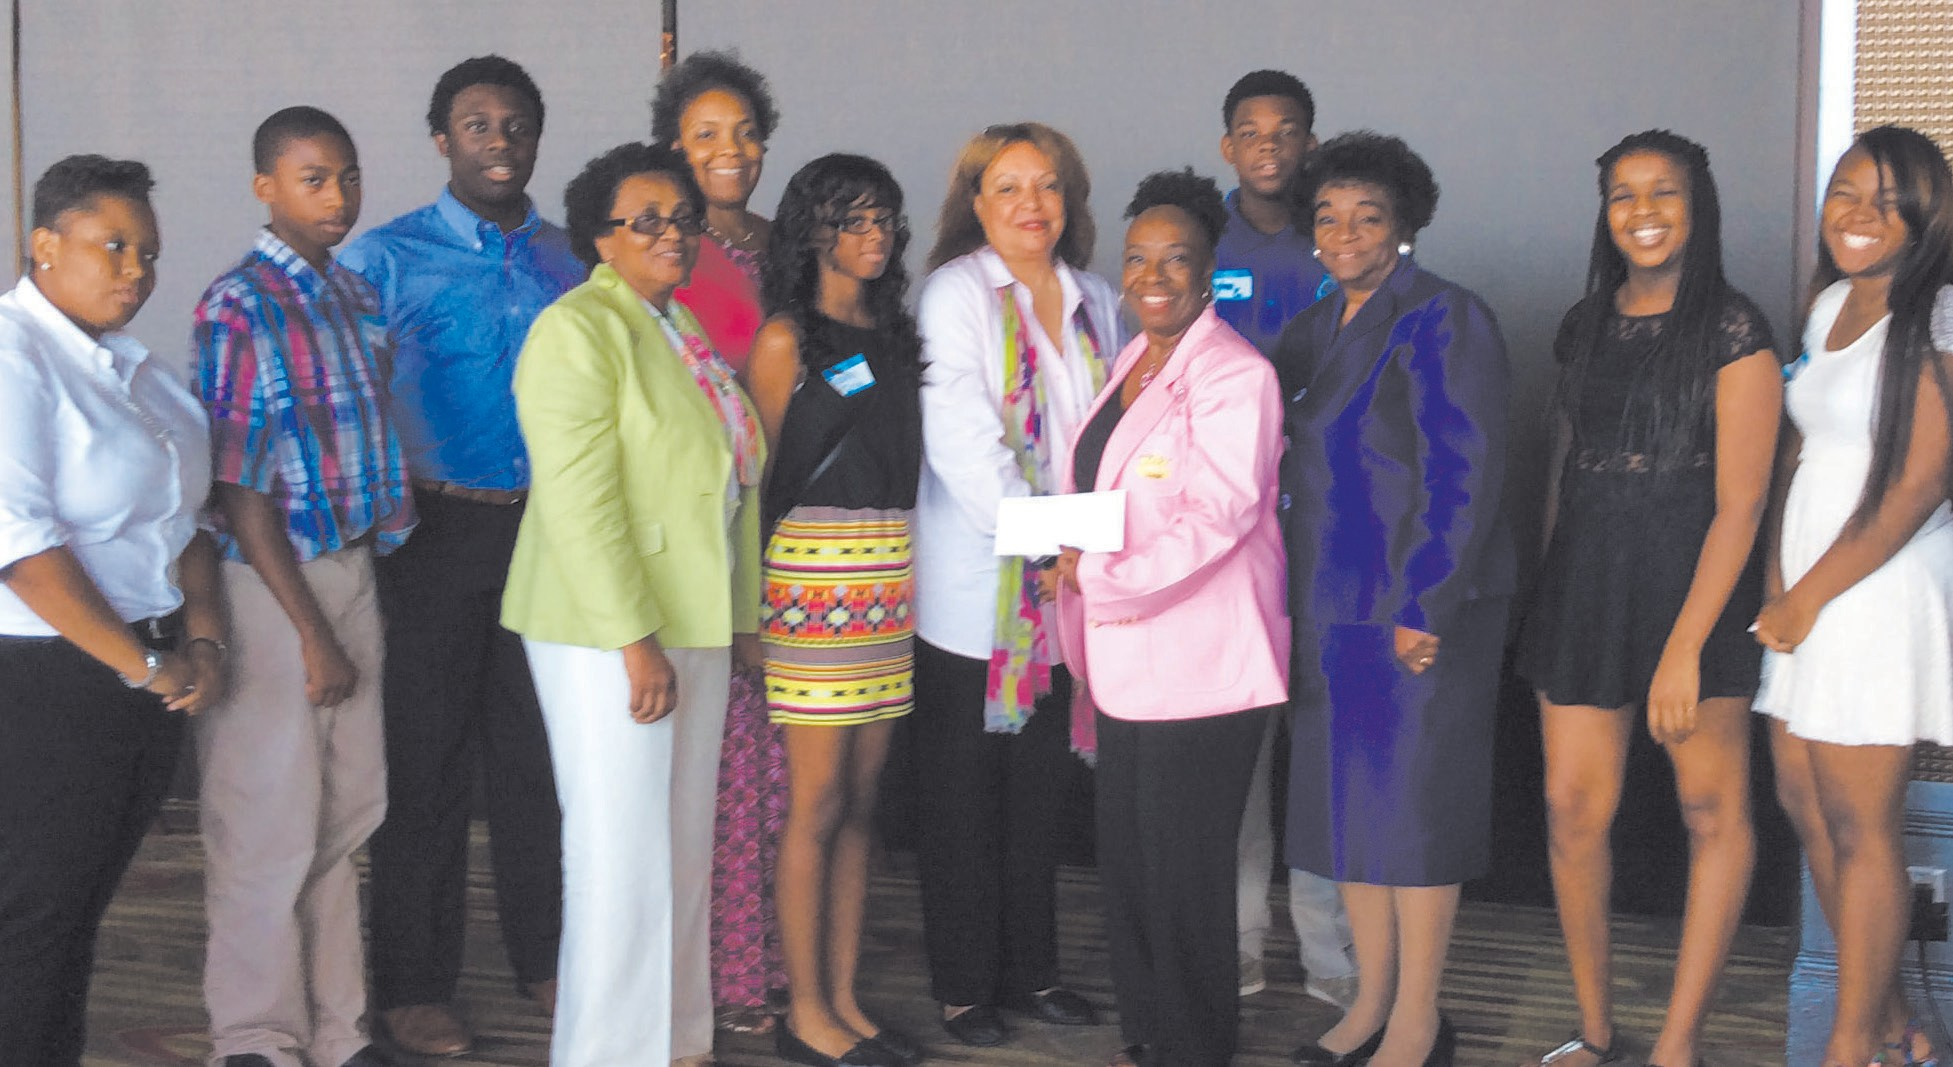 L-R: Teen Gabrielle Moore,first place essay winner, DiaJoin Foxworth, Lady Betty Lasseter, Lady Rycal Carter, Teen Tianna Irvin, Dr. Carolyn Battle Thomas, ESQ, Director COD, Inc., Lady Annette Mitchell, President, TLOD, Inc., Teen Dylan Carter, Dr. Carolyn Baldwin Tucker, Chair COD-Pendleton Essay Contest, Teen Kayla Price -Nashville Capitol City Chapter, and Teen Emoni Irvin, second place essay winner.